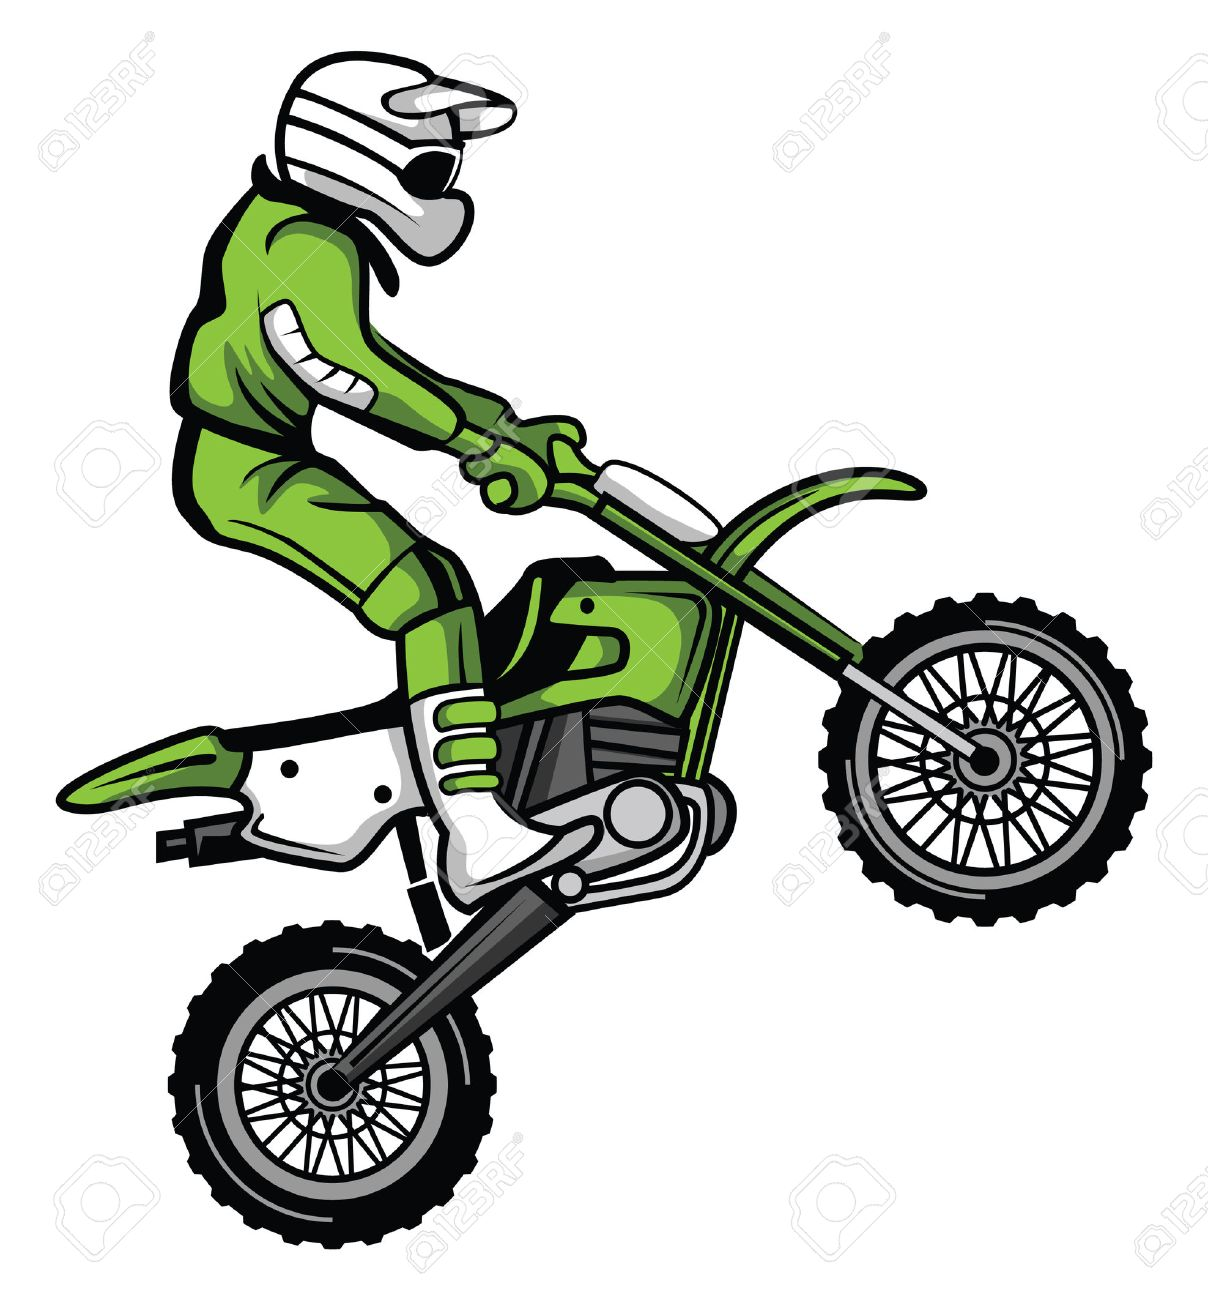 moto cross royalty free cliparts vectors and stock illustration rh 123rf com motocross helmet clipart motocross clipart free download